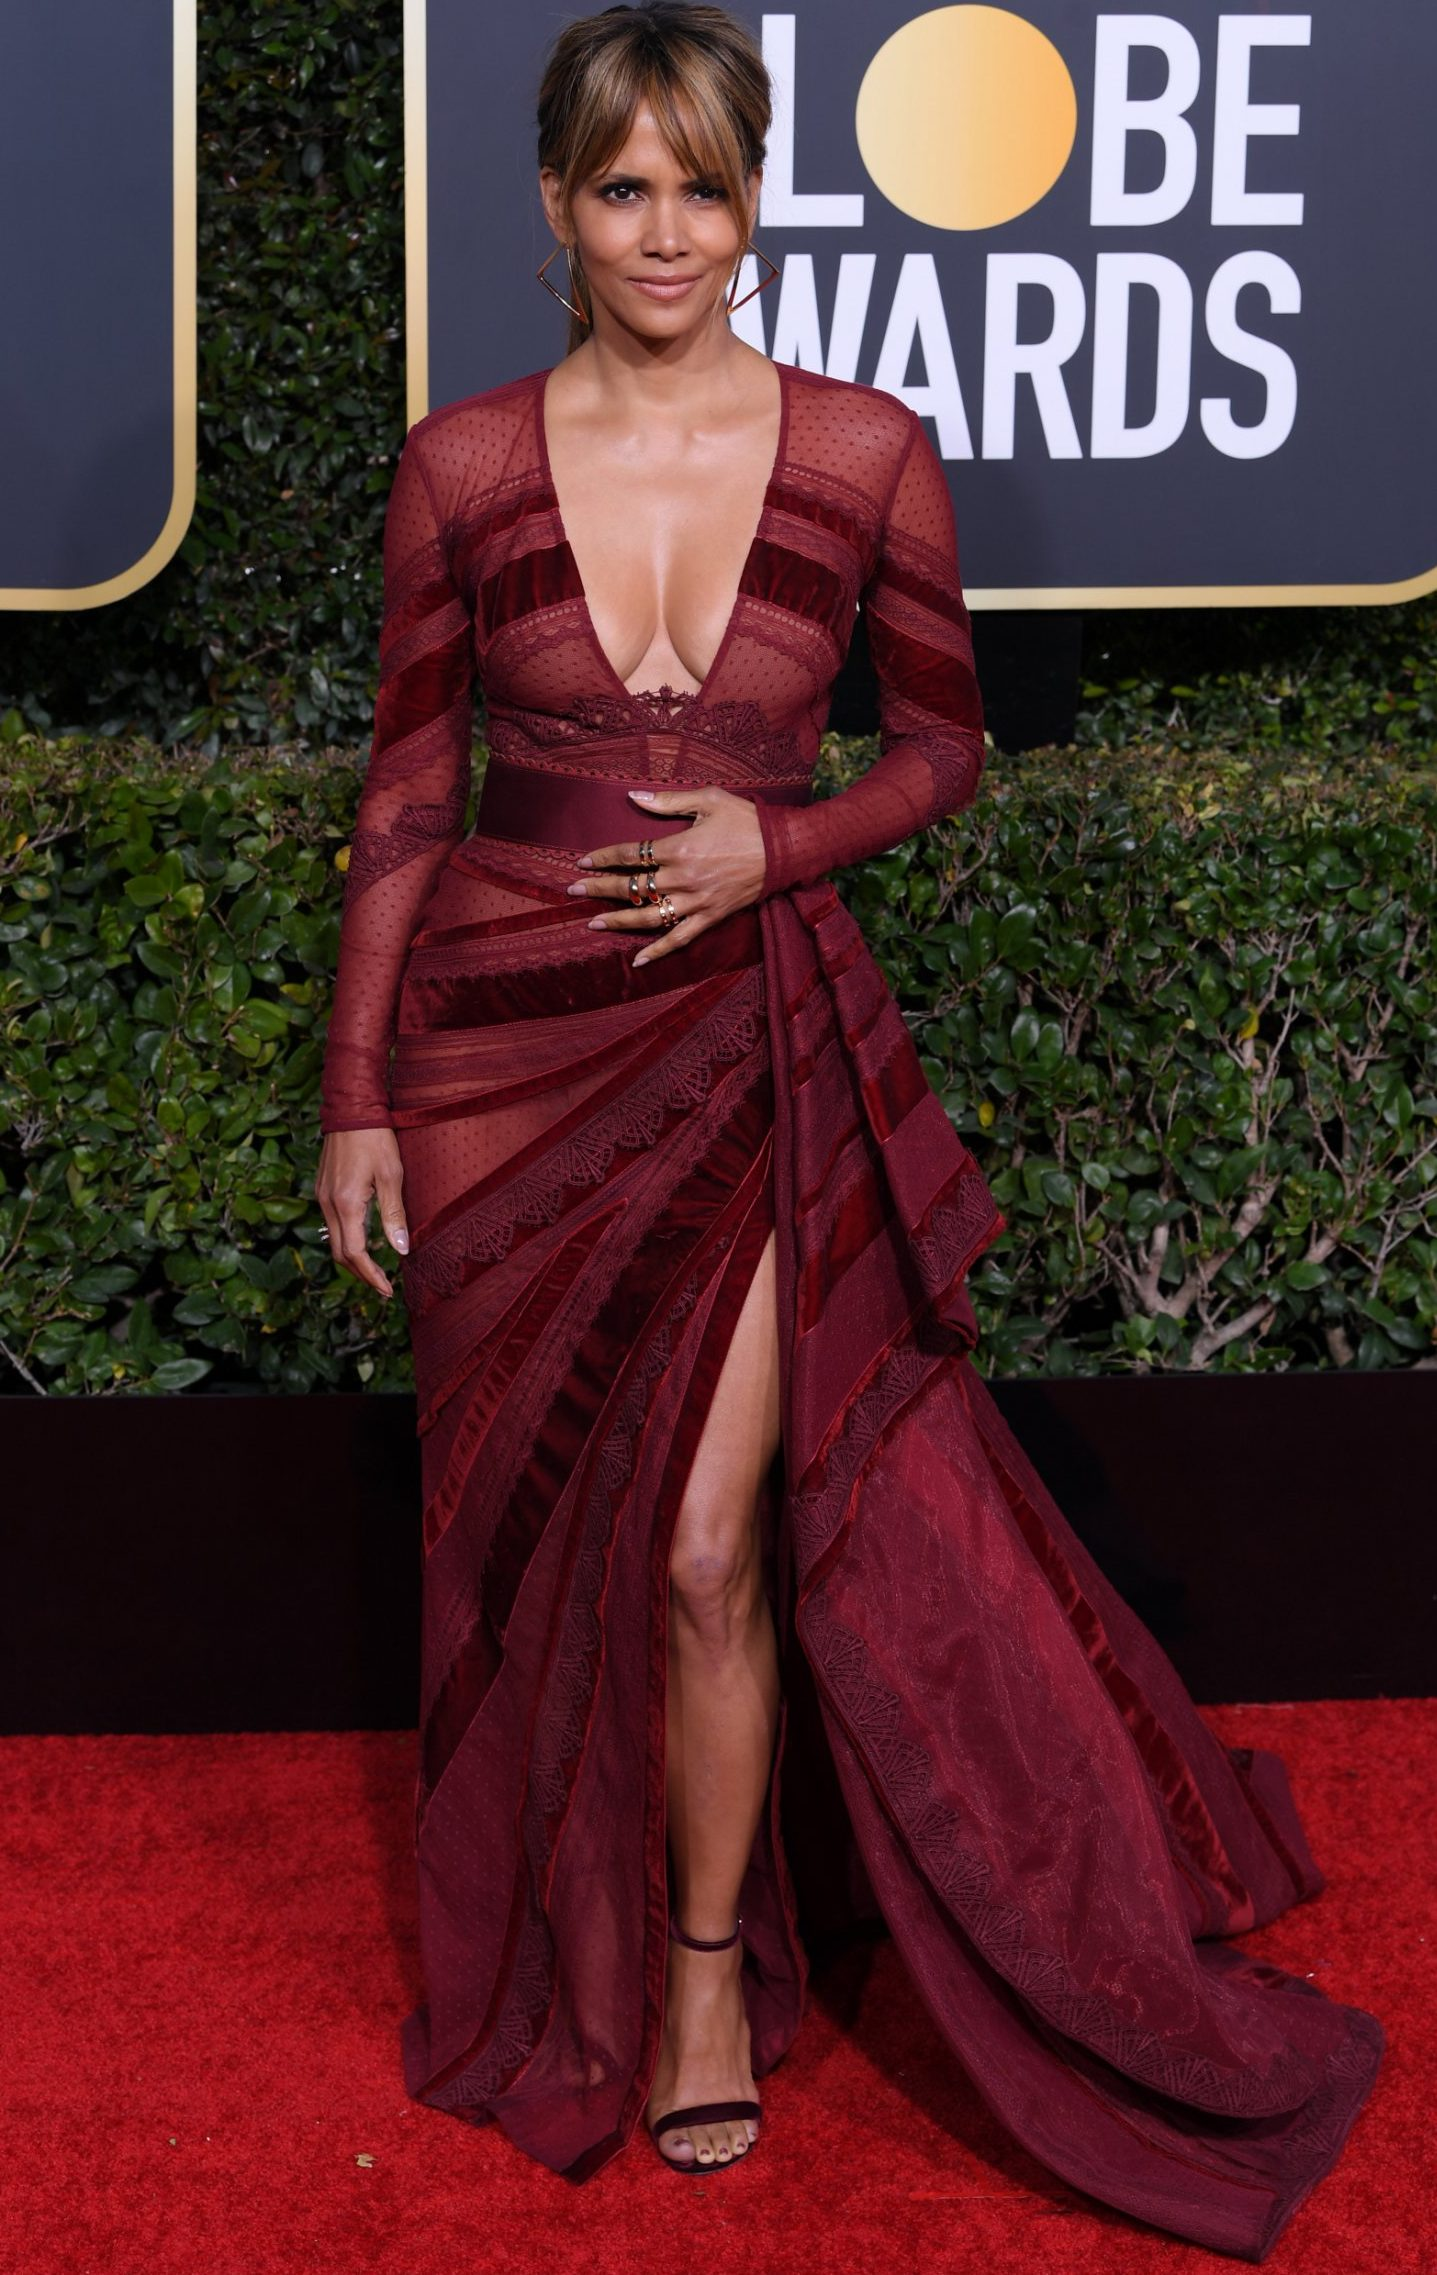 Halle Berry won The Golden Globes. Everybody else, go home